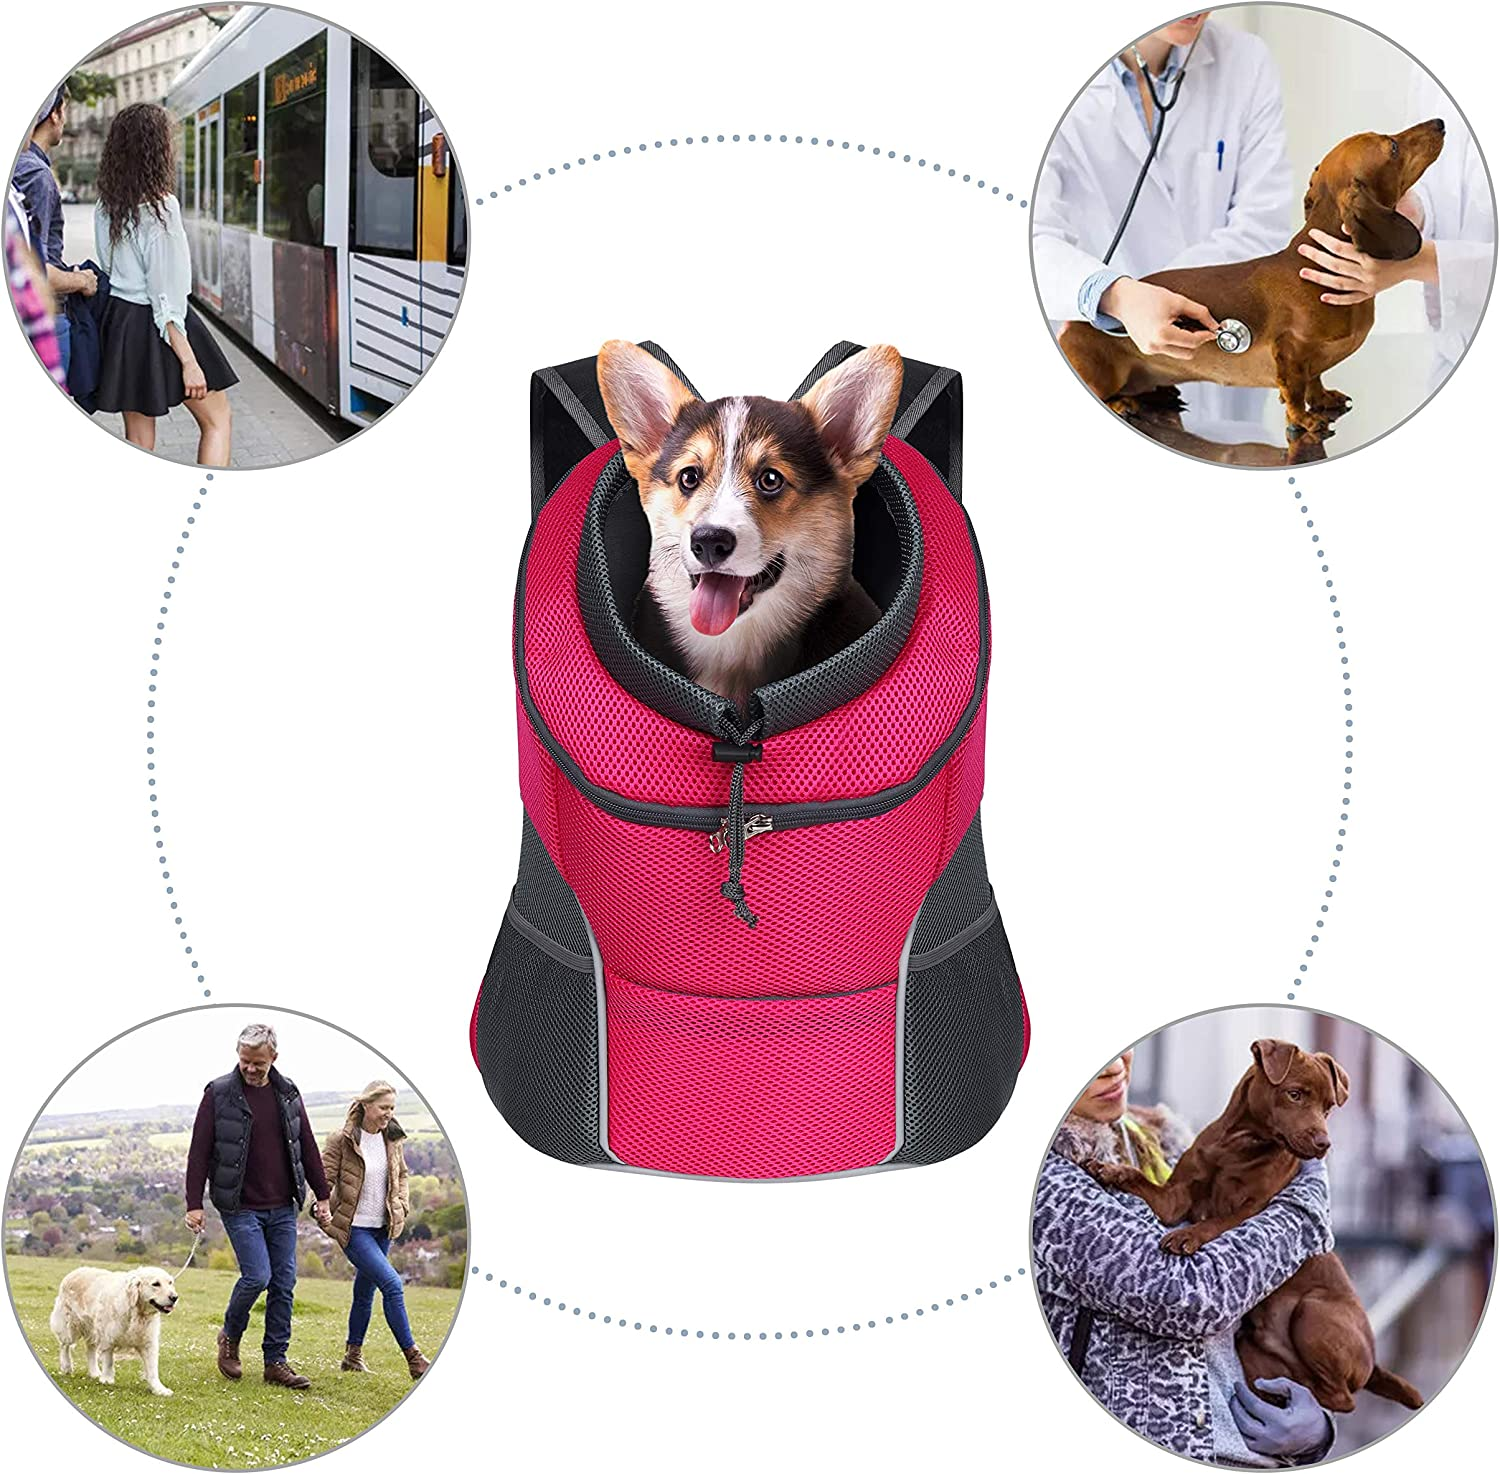 YUDODO Dog Carrier Backpack Pet Cat Backpack Carrier with Breathable Mesh Head Out Front Pack for Travel Hiking Outdoor